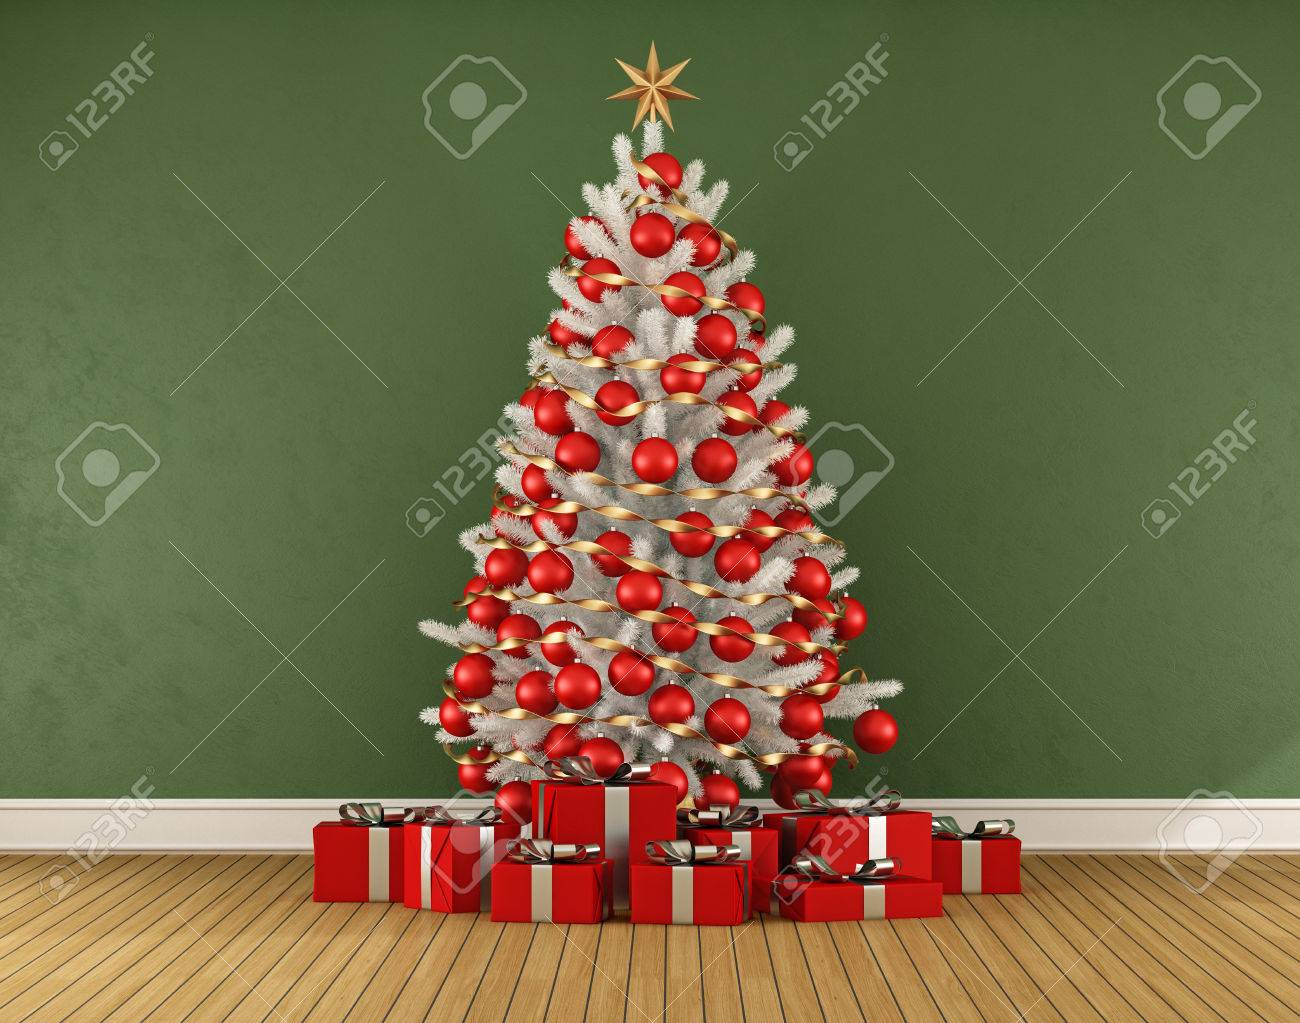 Green Room With White Christmas Trre With Red Decoration 3d Stock Photo Picture And Royalty Free Image Image 45723502